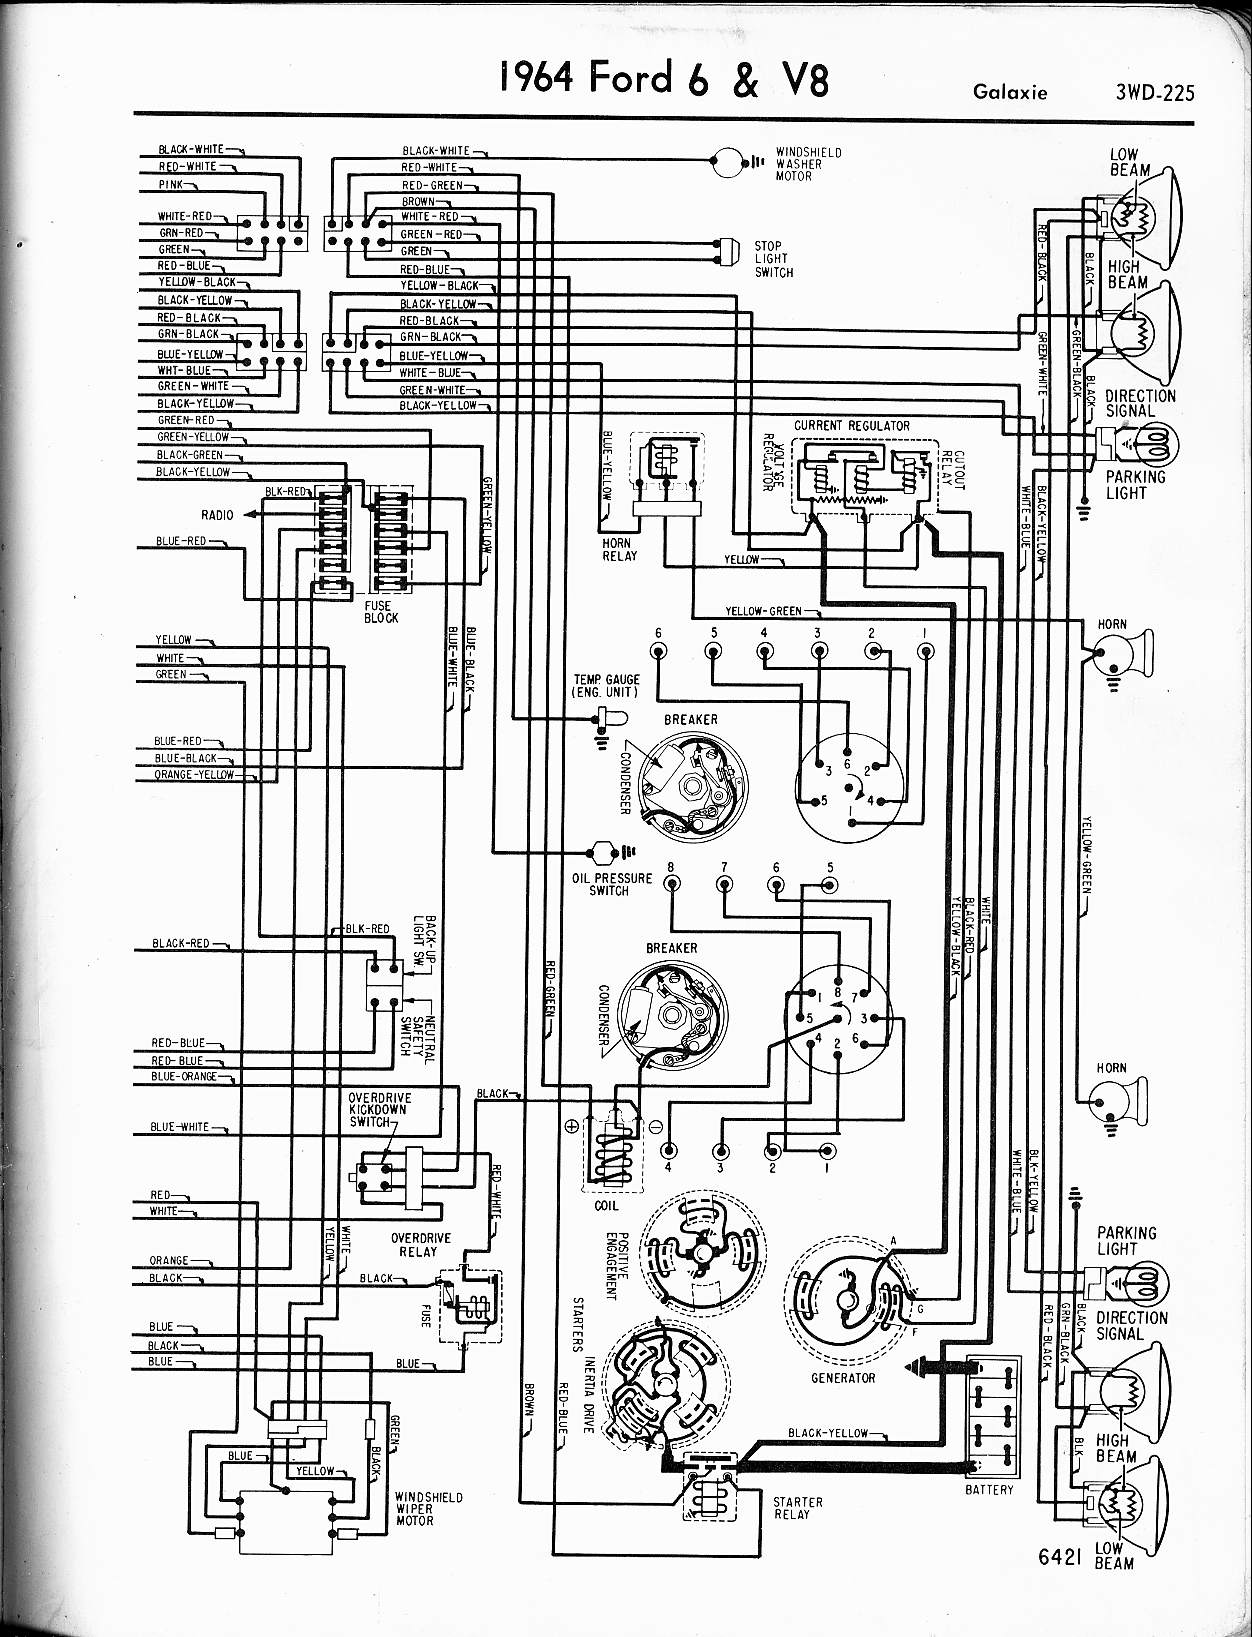 57 65 Ford Wiring Diagrams Wire Color Coding Http Temperature Systems Com Htm 1964 6 V8 Galaxie Right